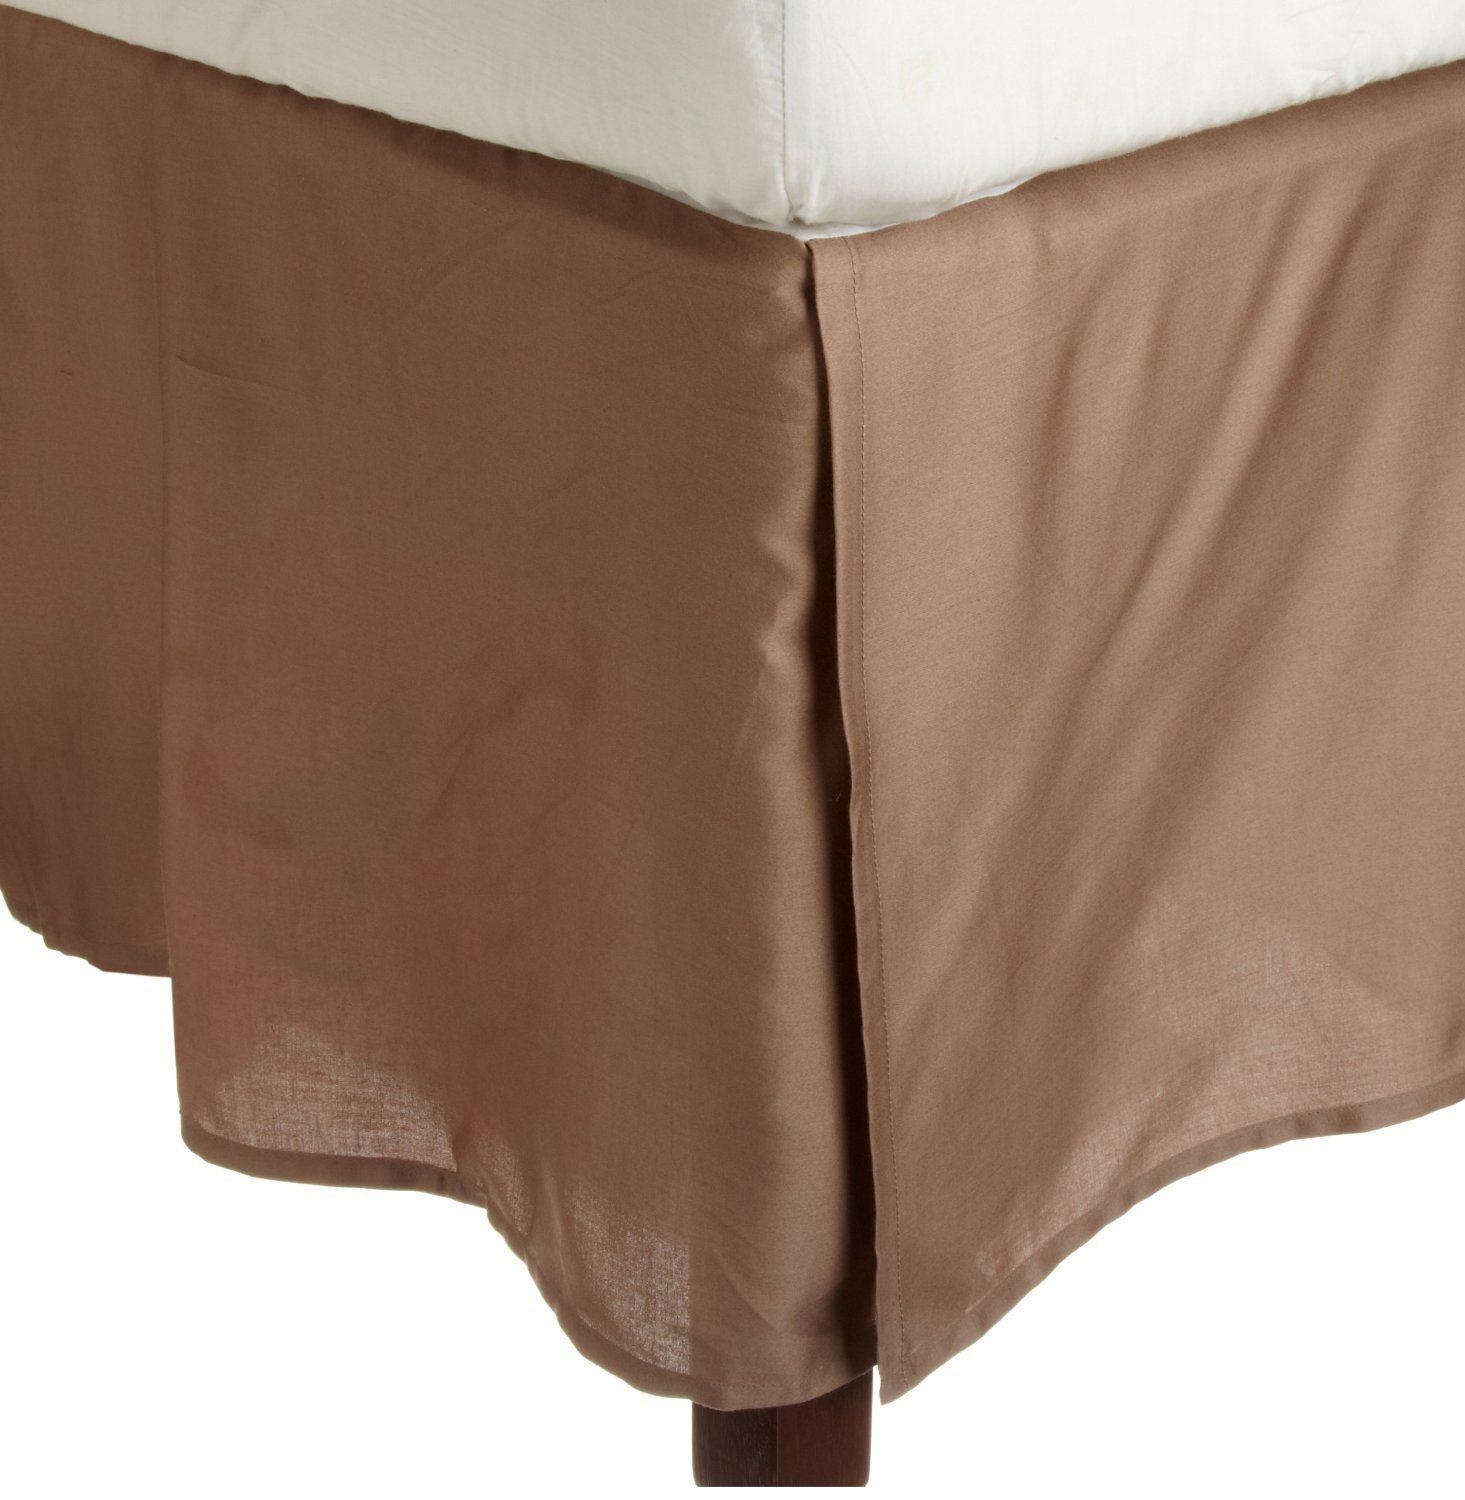 1000TC Taupe Solid Bed Skirt Select Drop Length All US Size 100% Egy. cotton